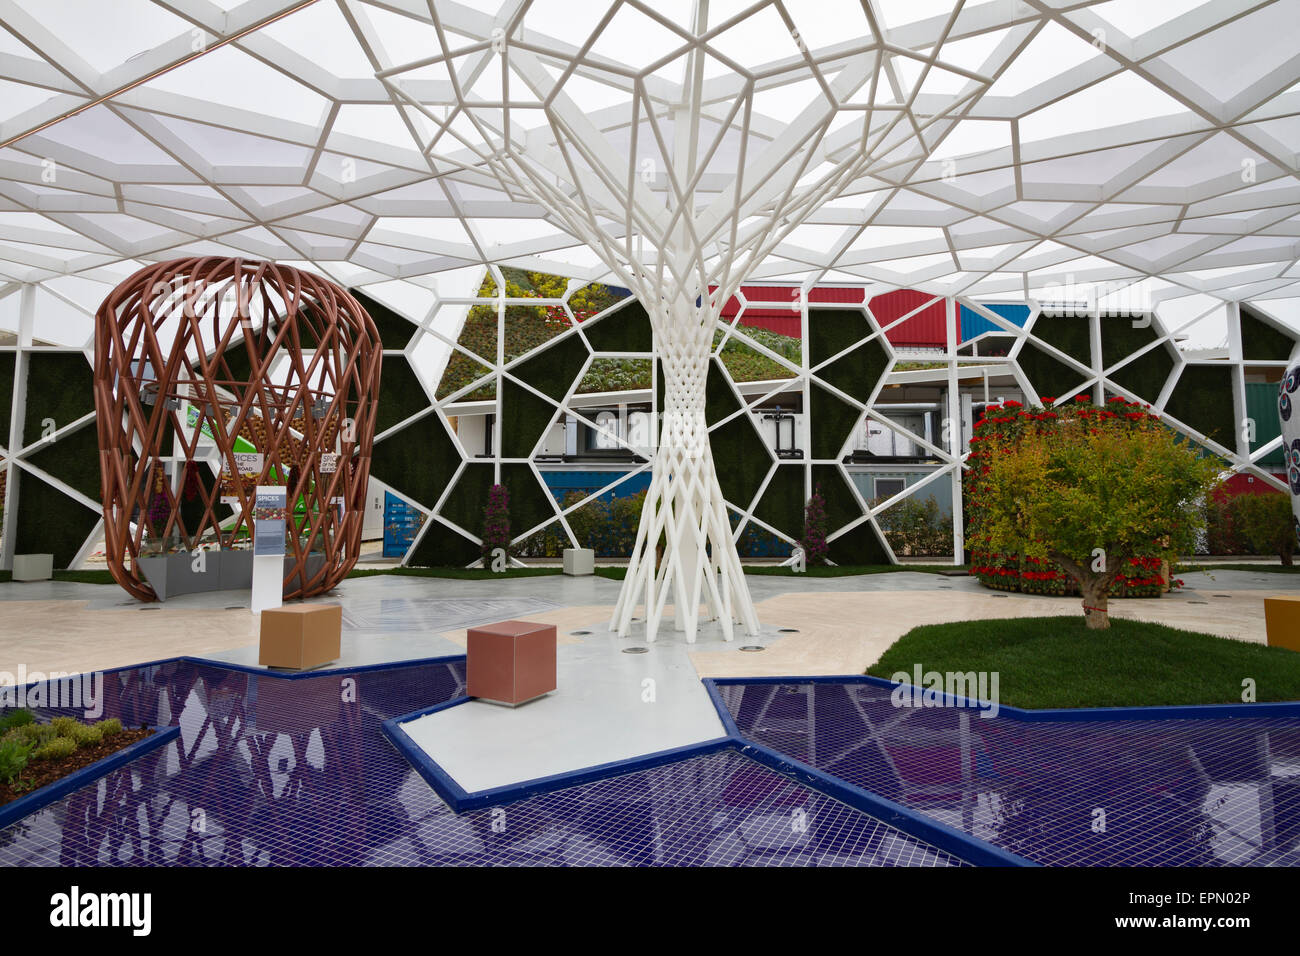 Milan, Italy, 5th May 2015. The Turkish pavilion at Expo 2015. - Stock Image